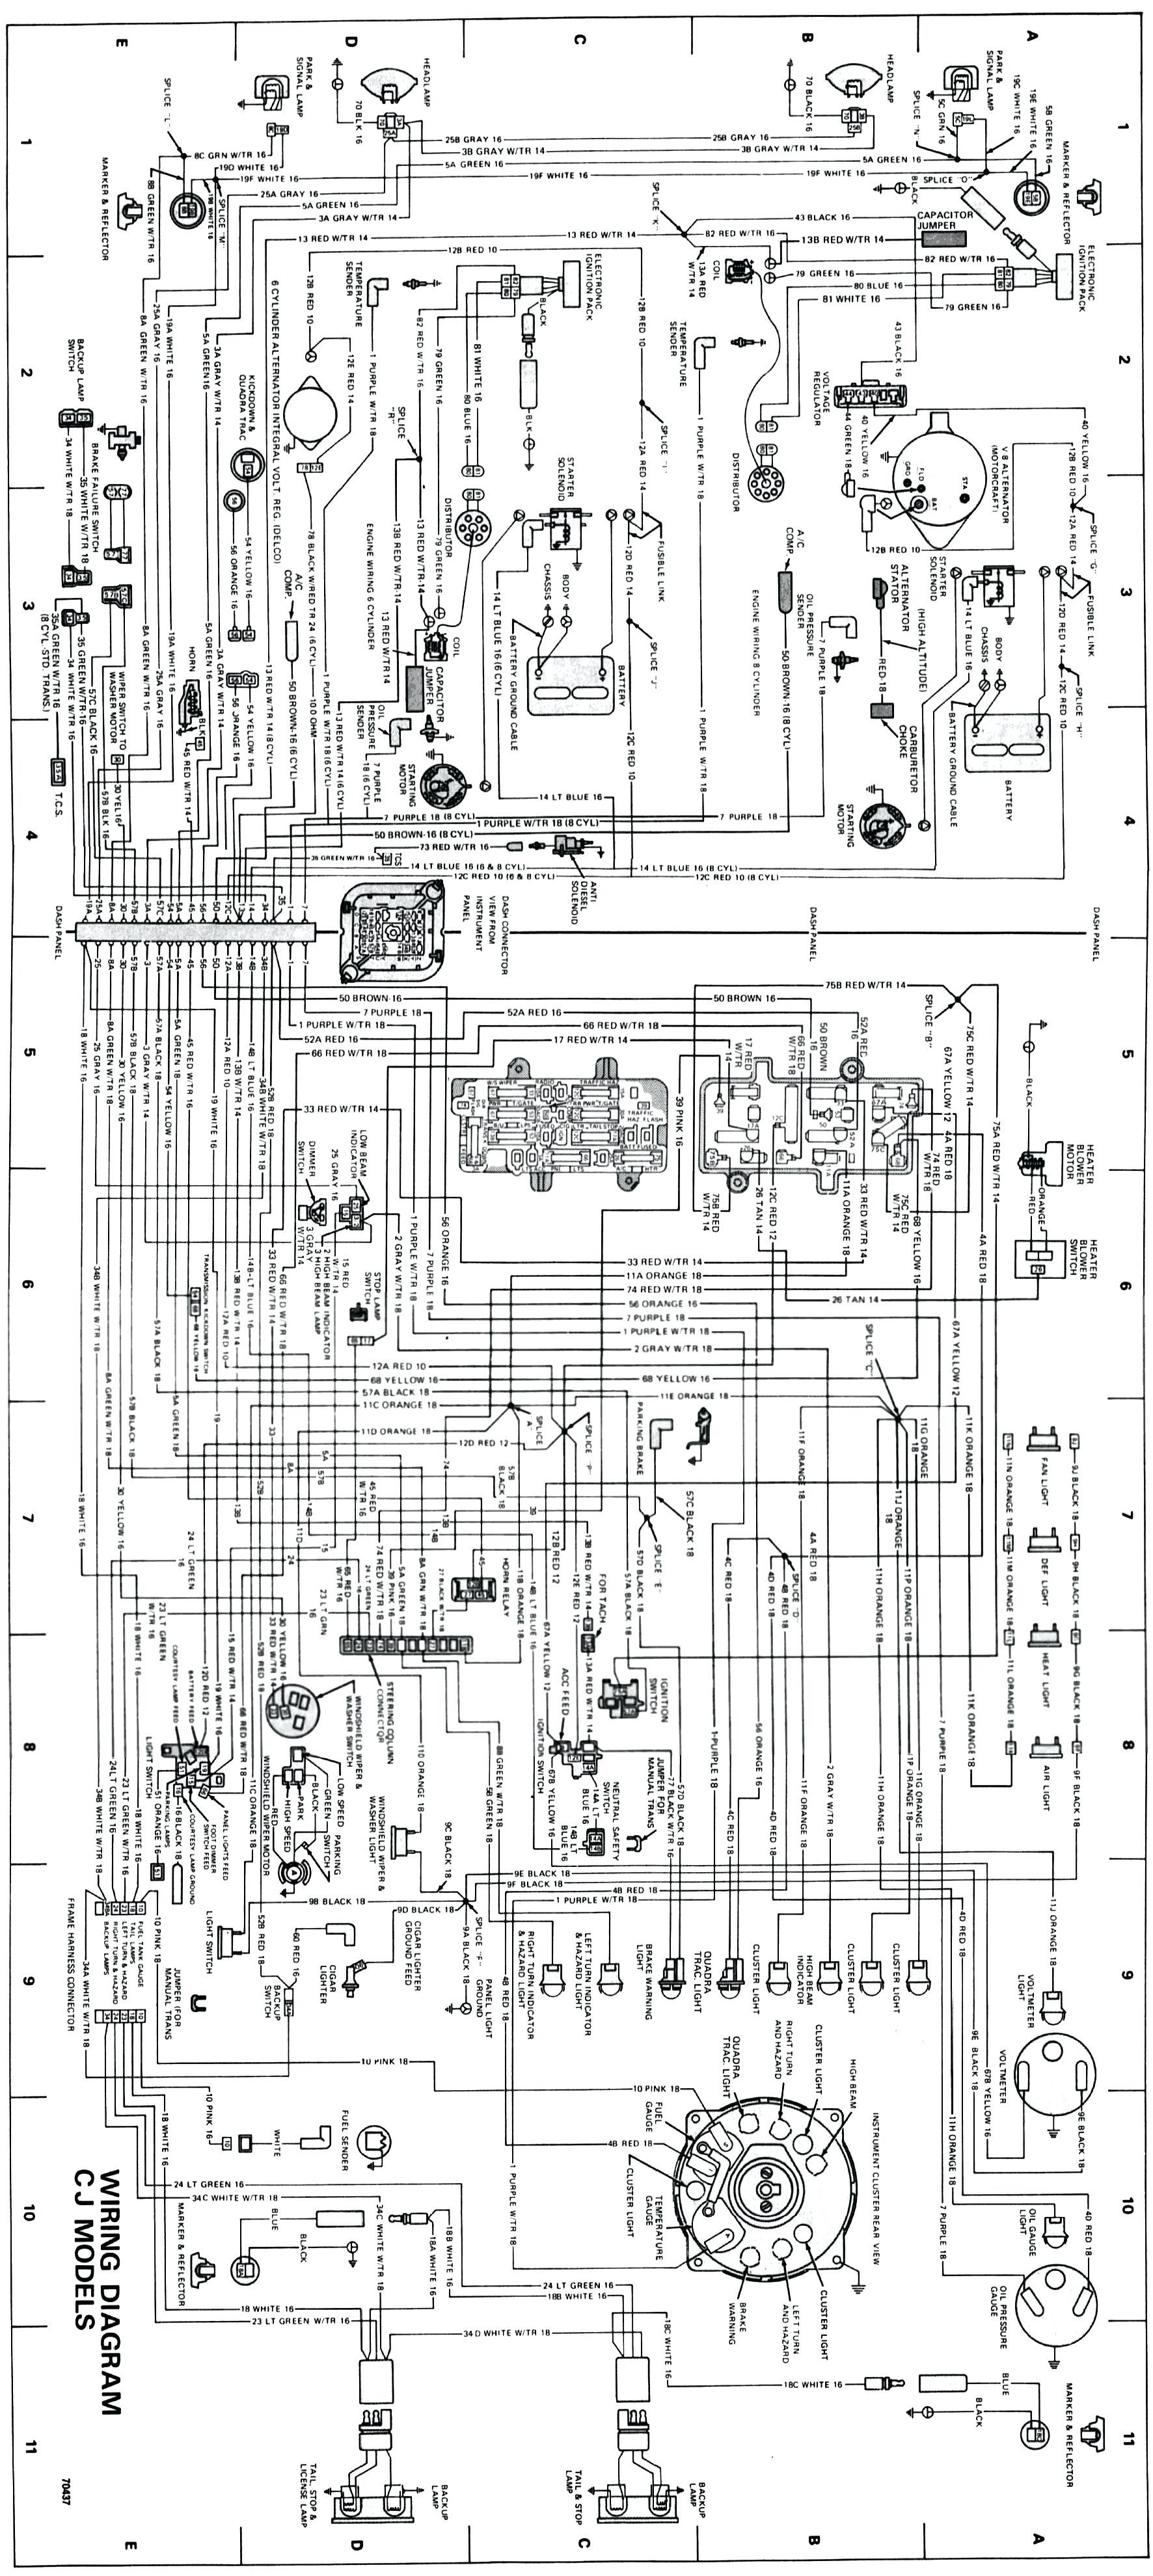 Wire Schematic 1986 Jeep Cj | Wiring Diagram on 86 mustang wiring diagram, 86 chevy wiring diagram, 86 corvette wiring diagram, 86 bronco wiring diagram, 86 camaro wiring diagram, 86 ford wiring diagram,